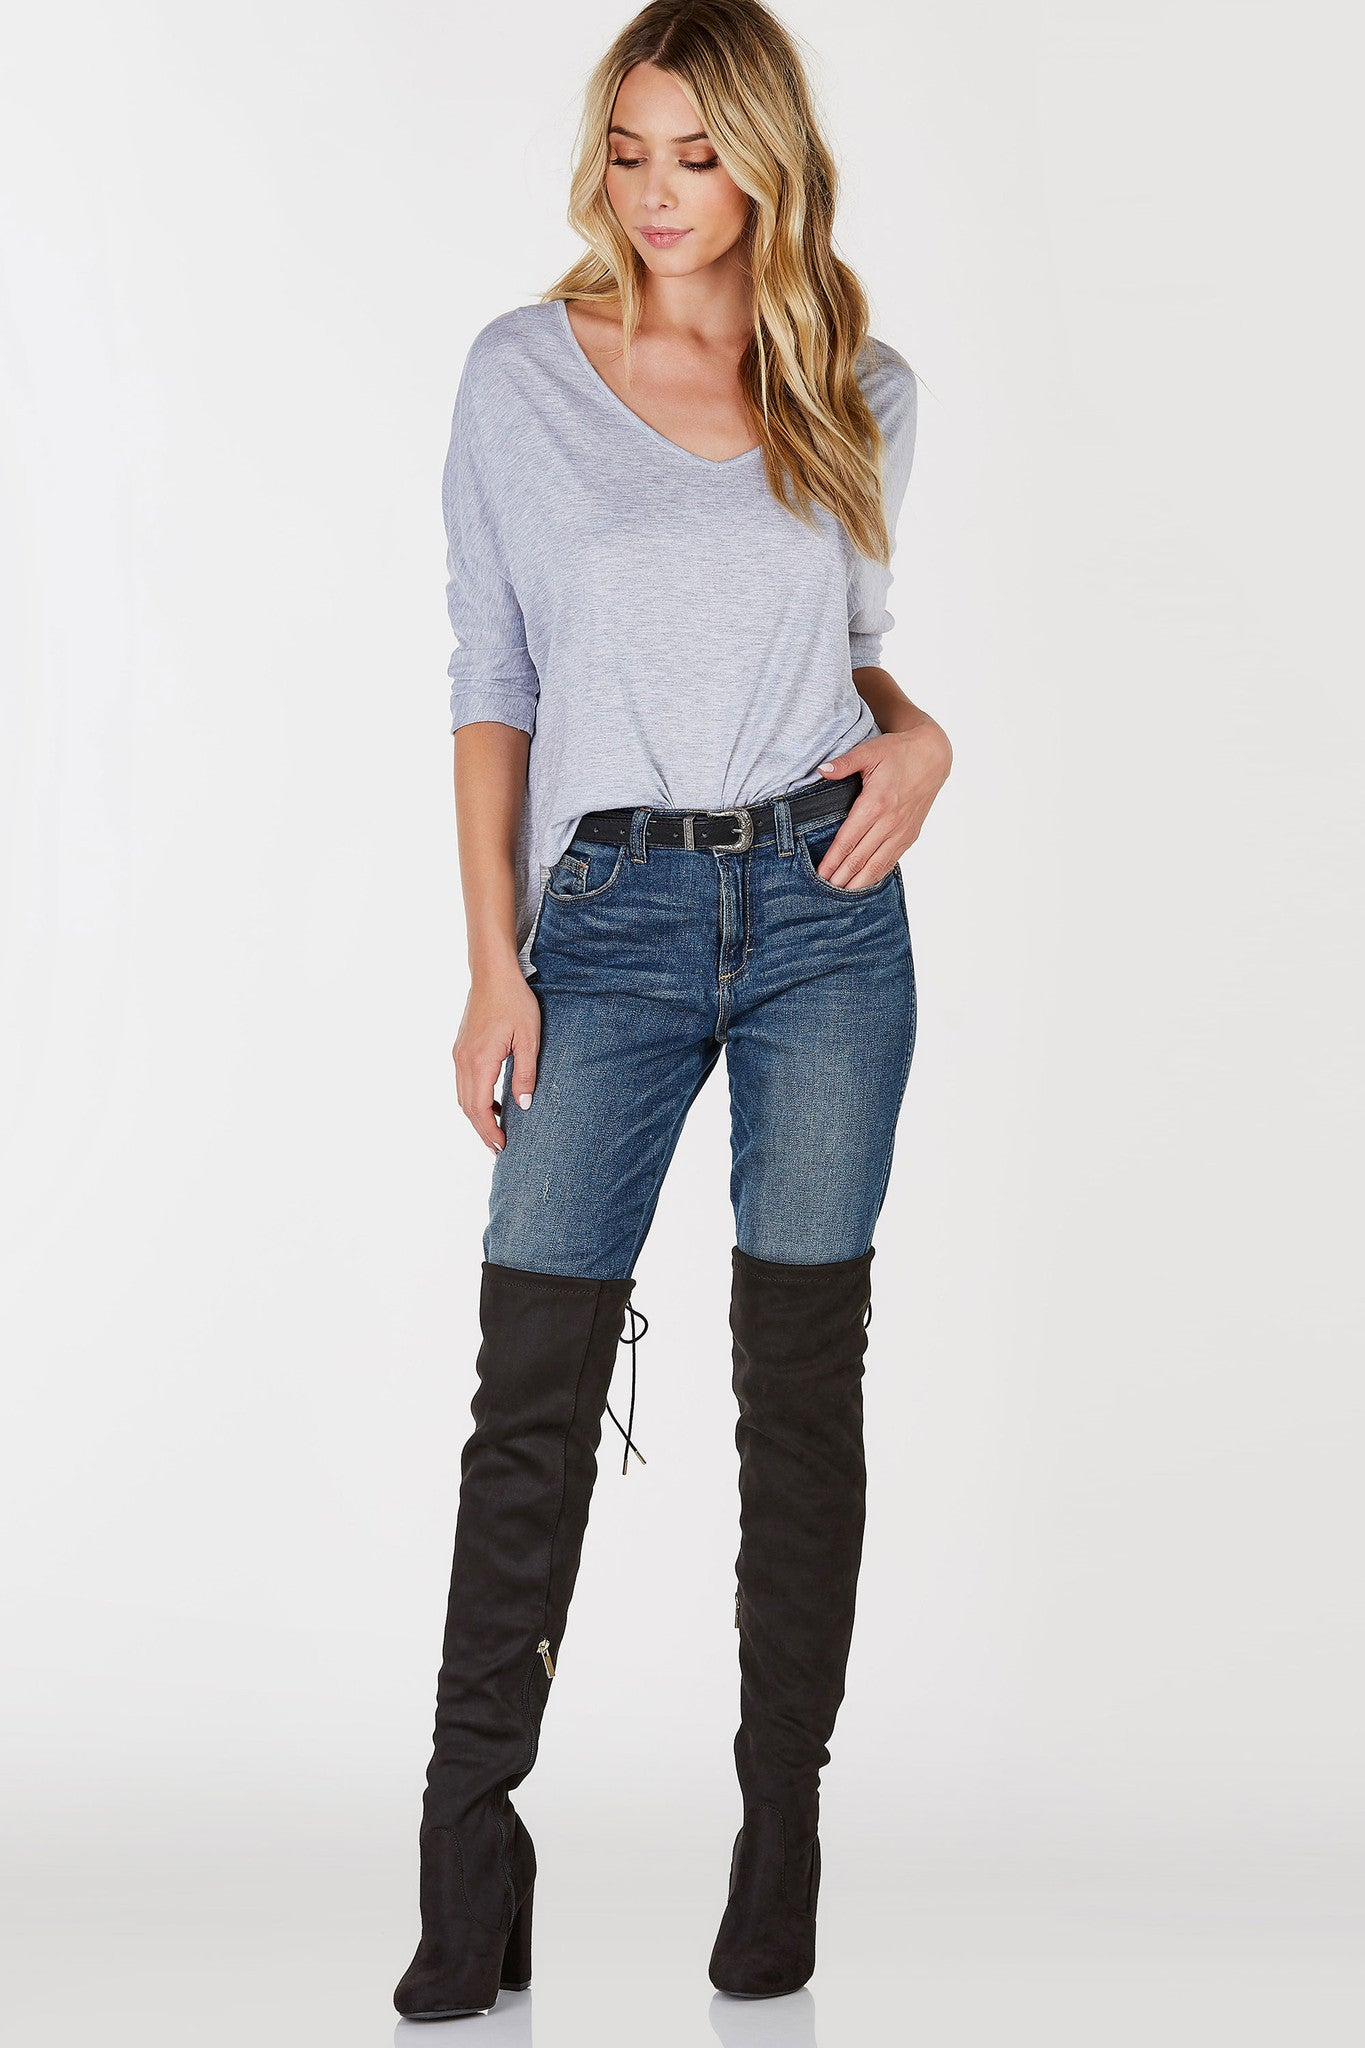 Soft and comfortable, the perfect shirt to wear in and out of bed! Soft V-neckline with cropped dolman sleeves. Rounded hem with a slightly longer back. Throw on a pair of classic skinnies and thigh high boots!